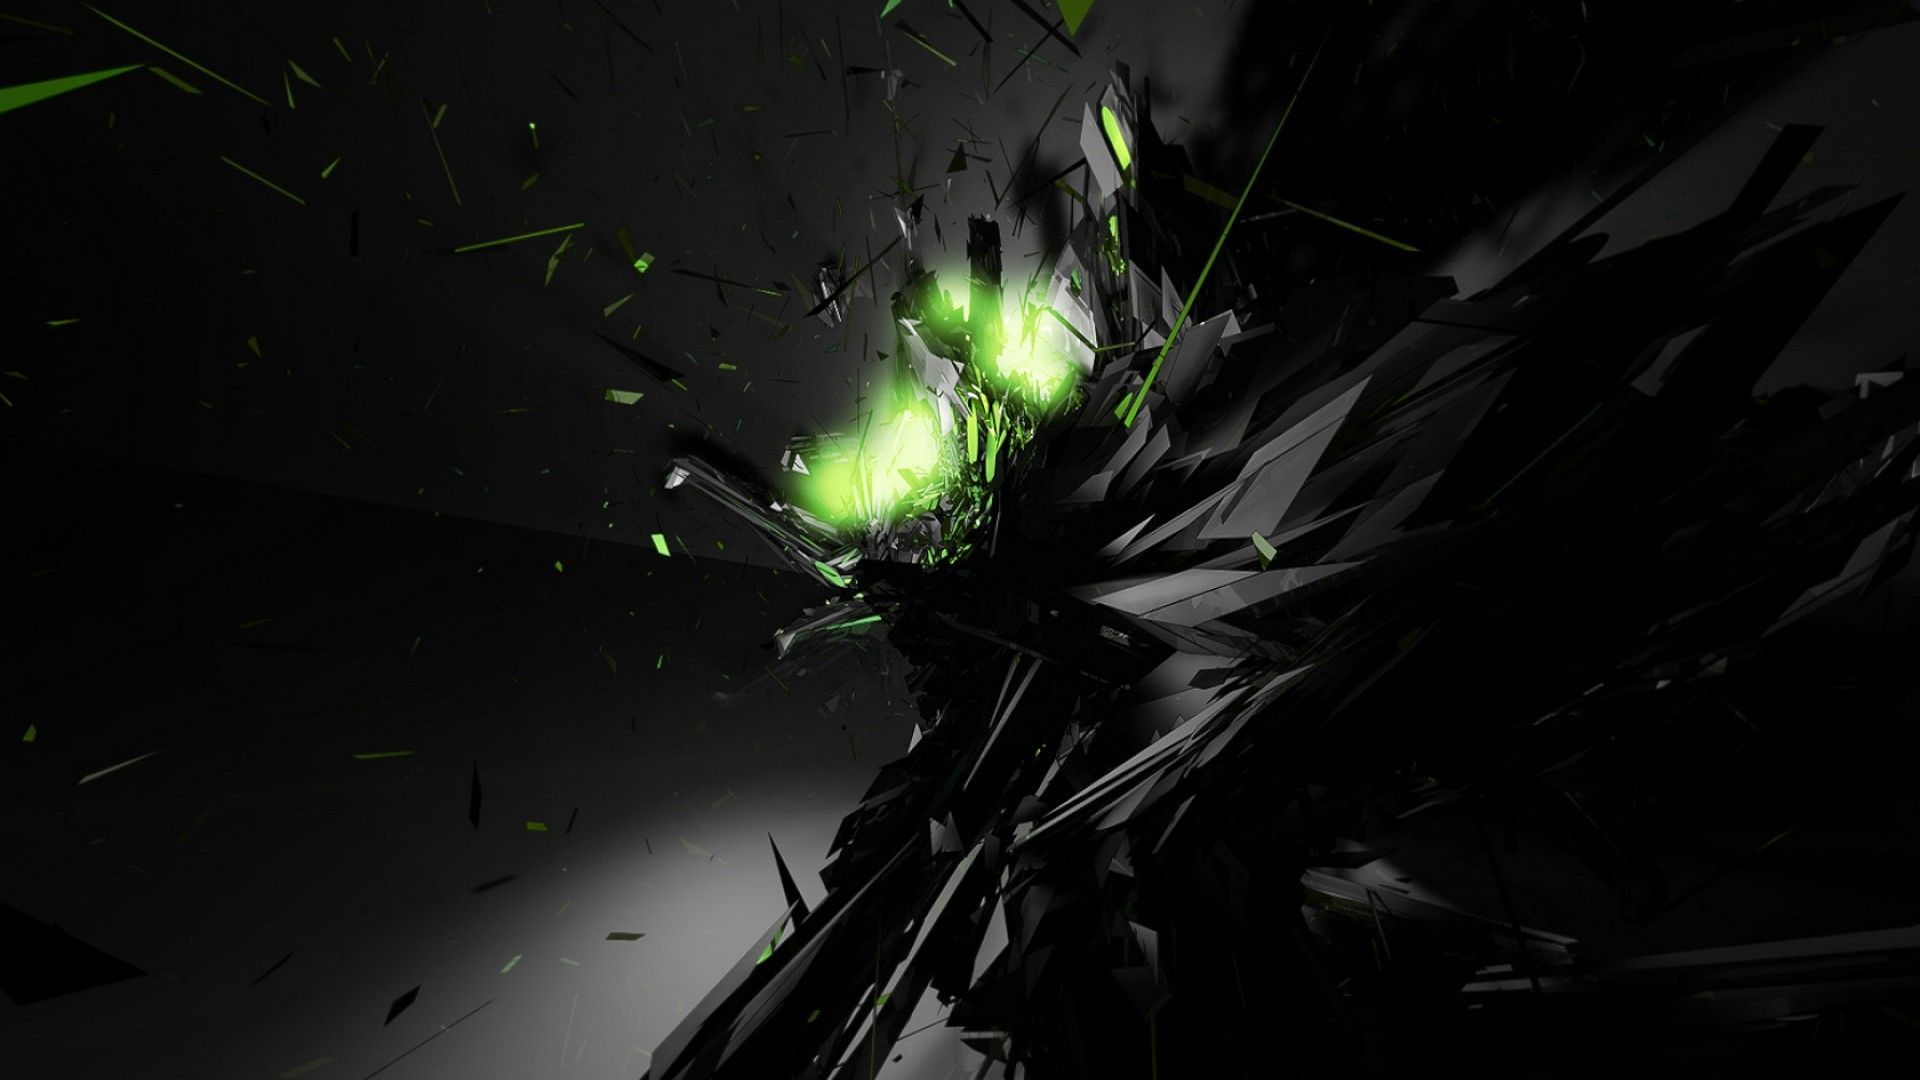 1920x1080 Black Abstract Green Glow Desktop Wallpaper | He is soooo sweeet <3 ...